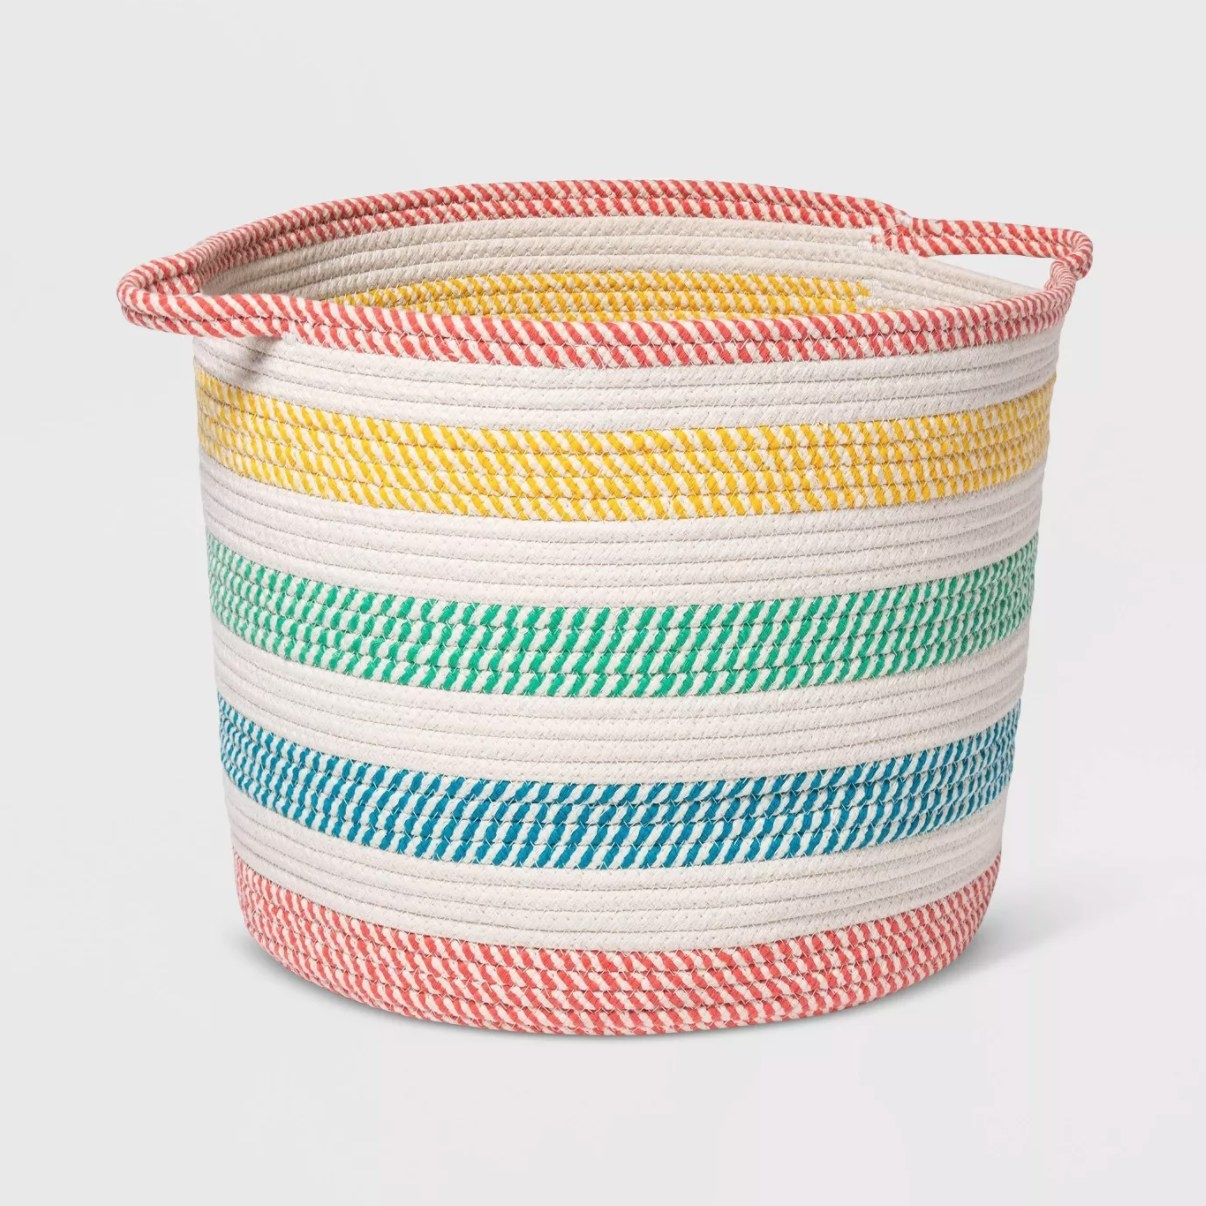 A white rope basket with rainbow-colored stripes